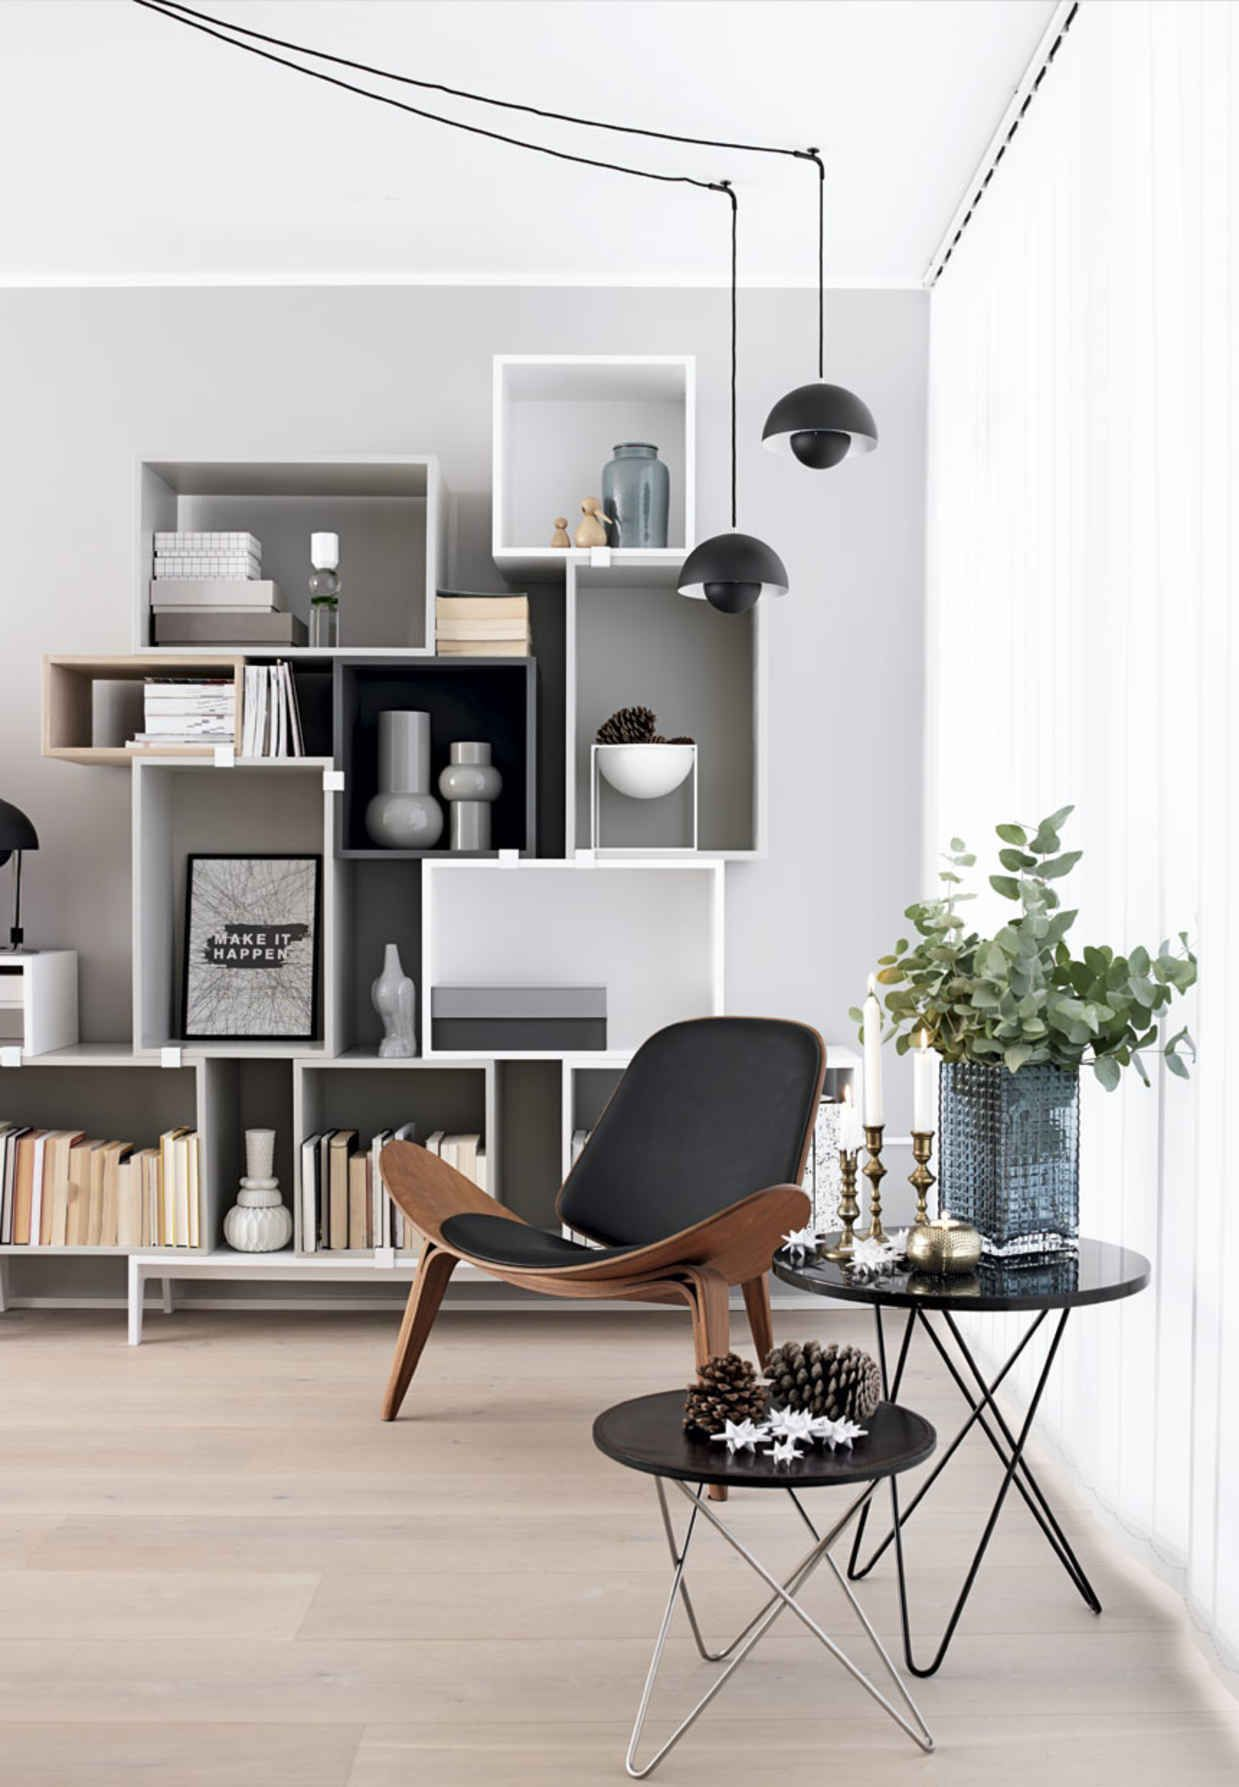 50 Examples Of Beautiful Scandinavian Interior Design Scandinavian Interior Design